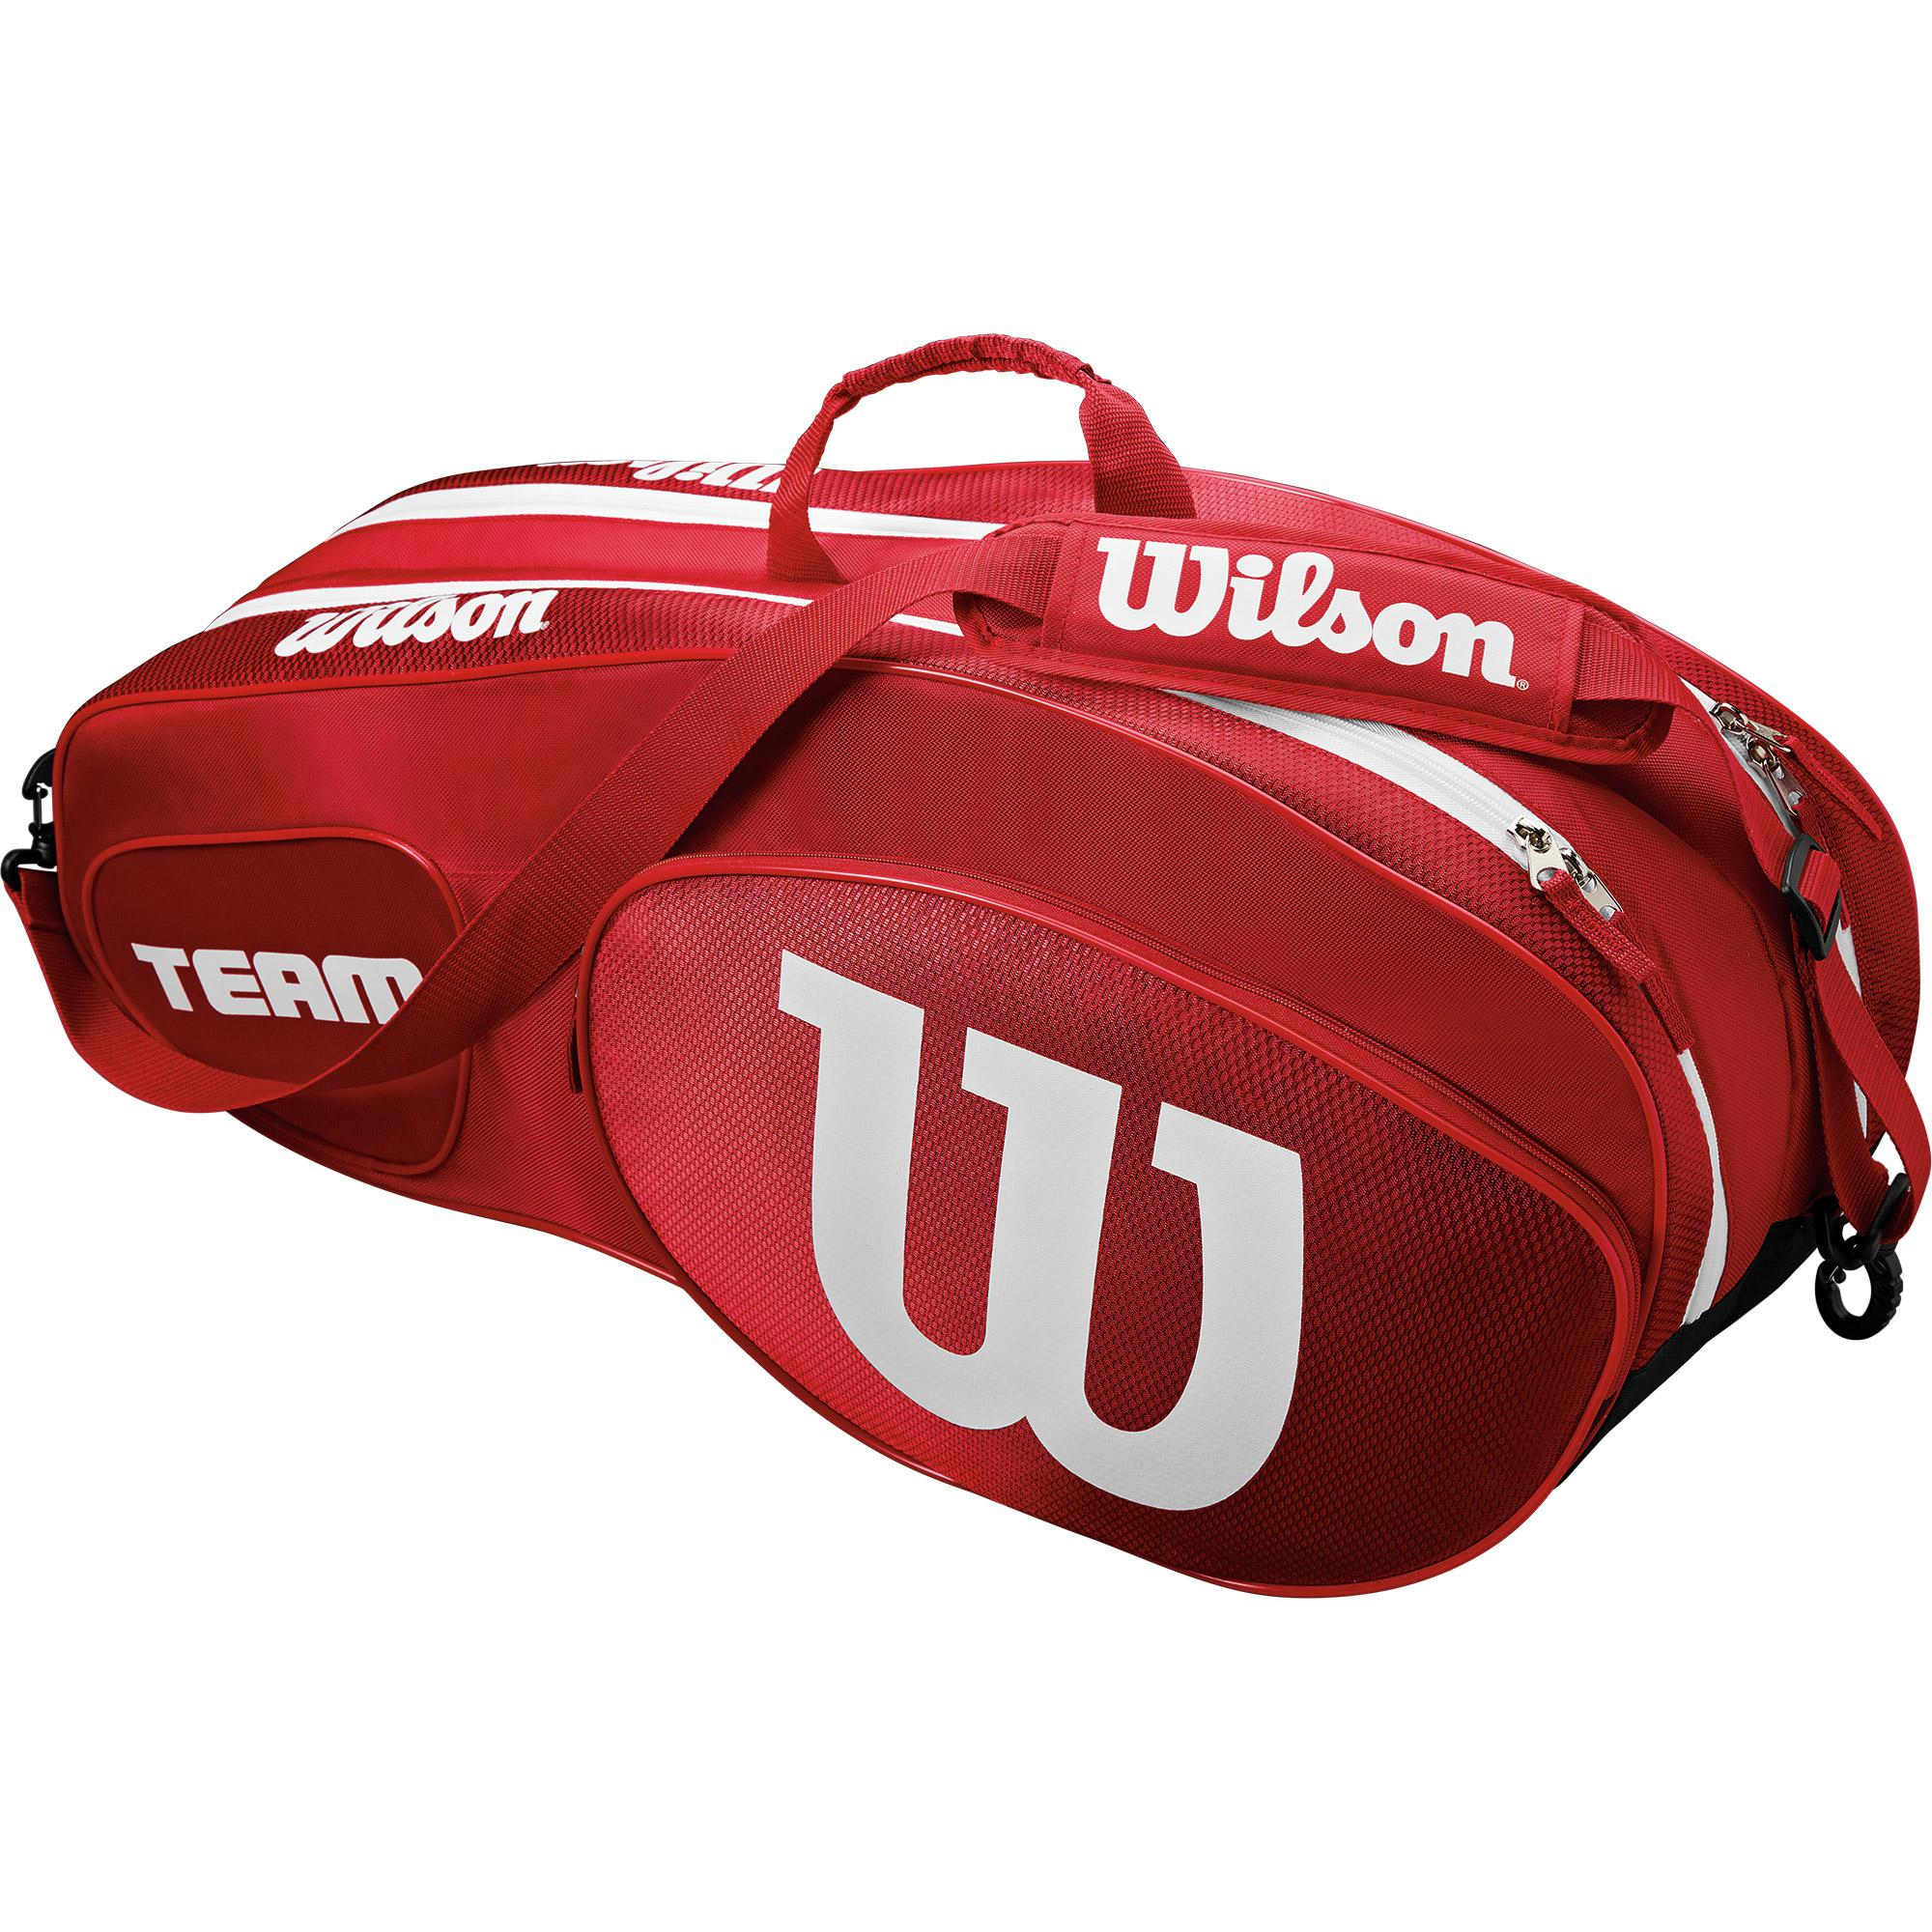 Wilson Team Iii 6 Pack Bag Red White